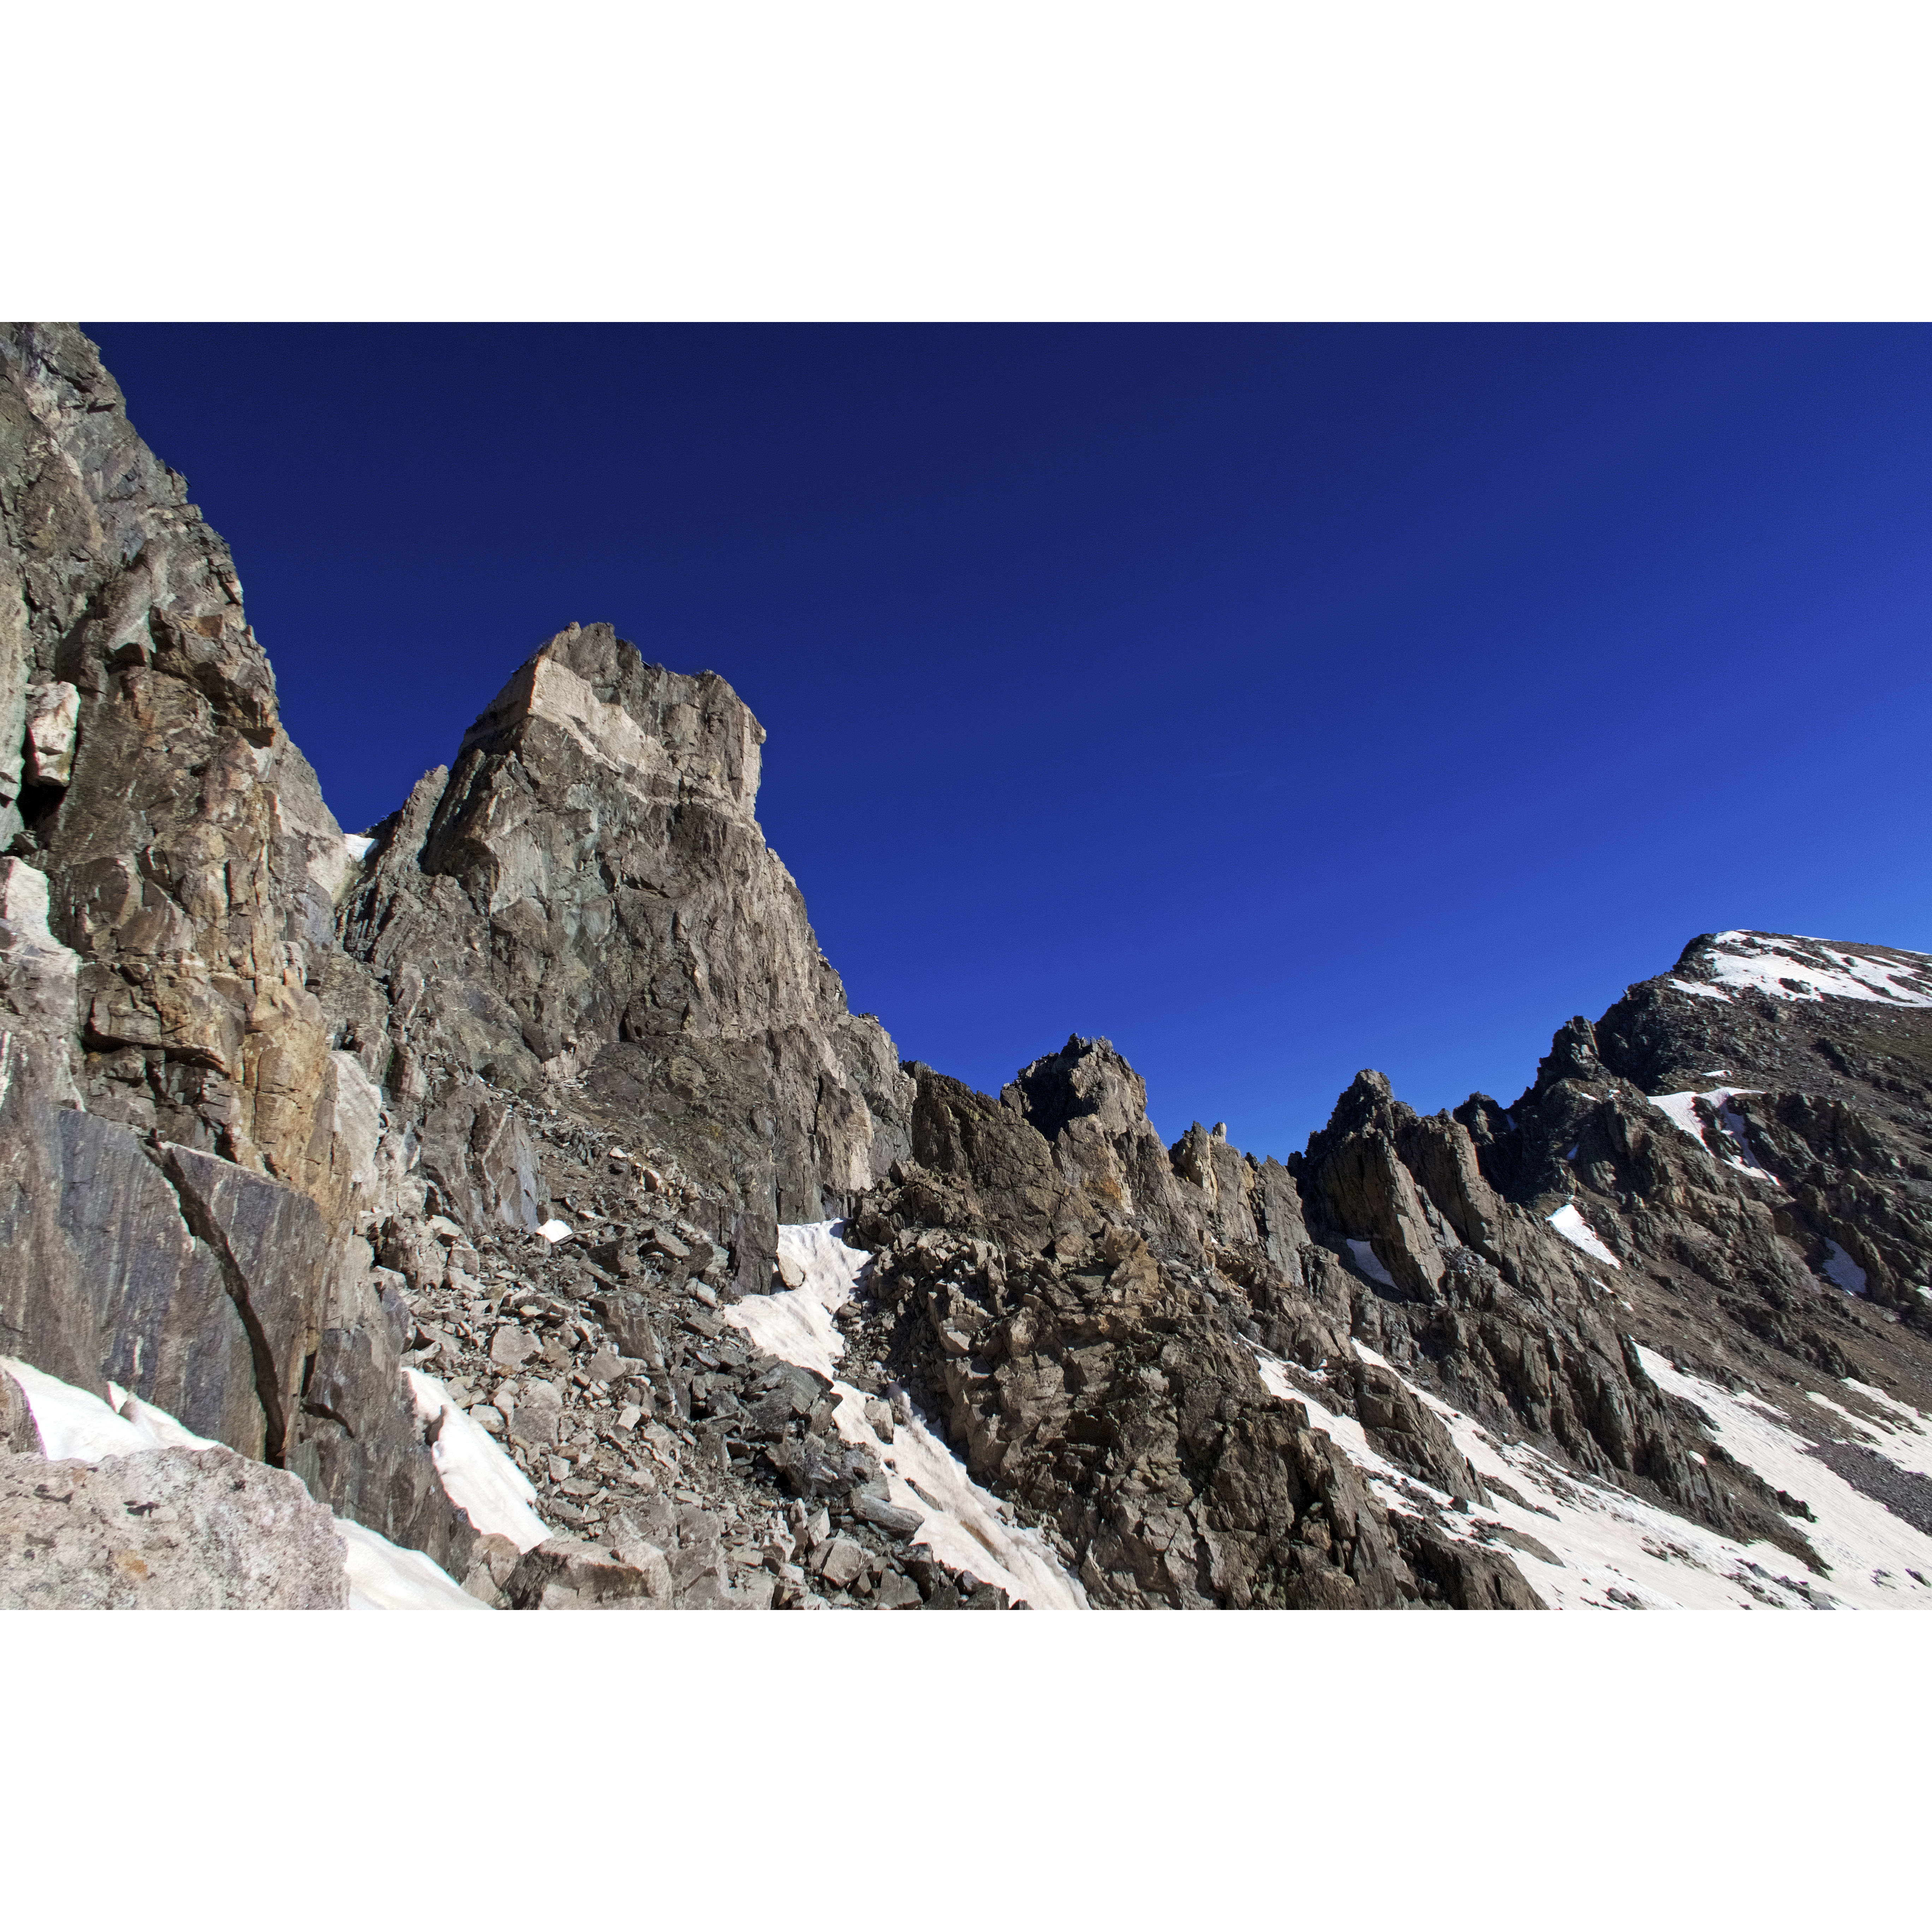 The Fletcher - Atlantic Traverse in the Mosquito/Tenmile Range